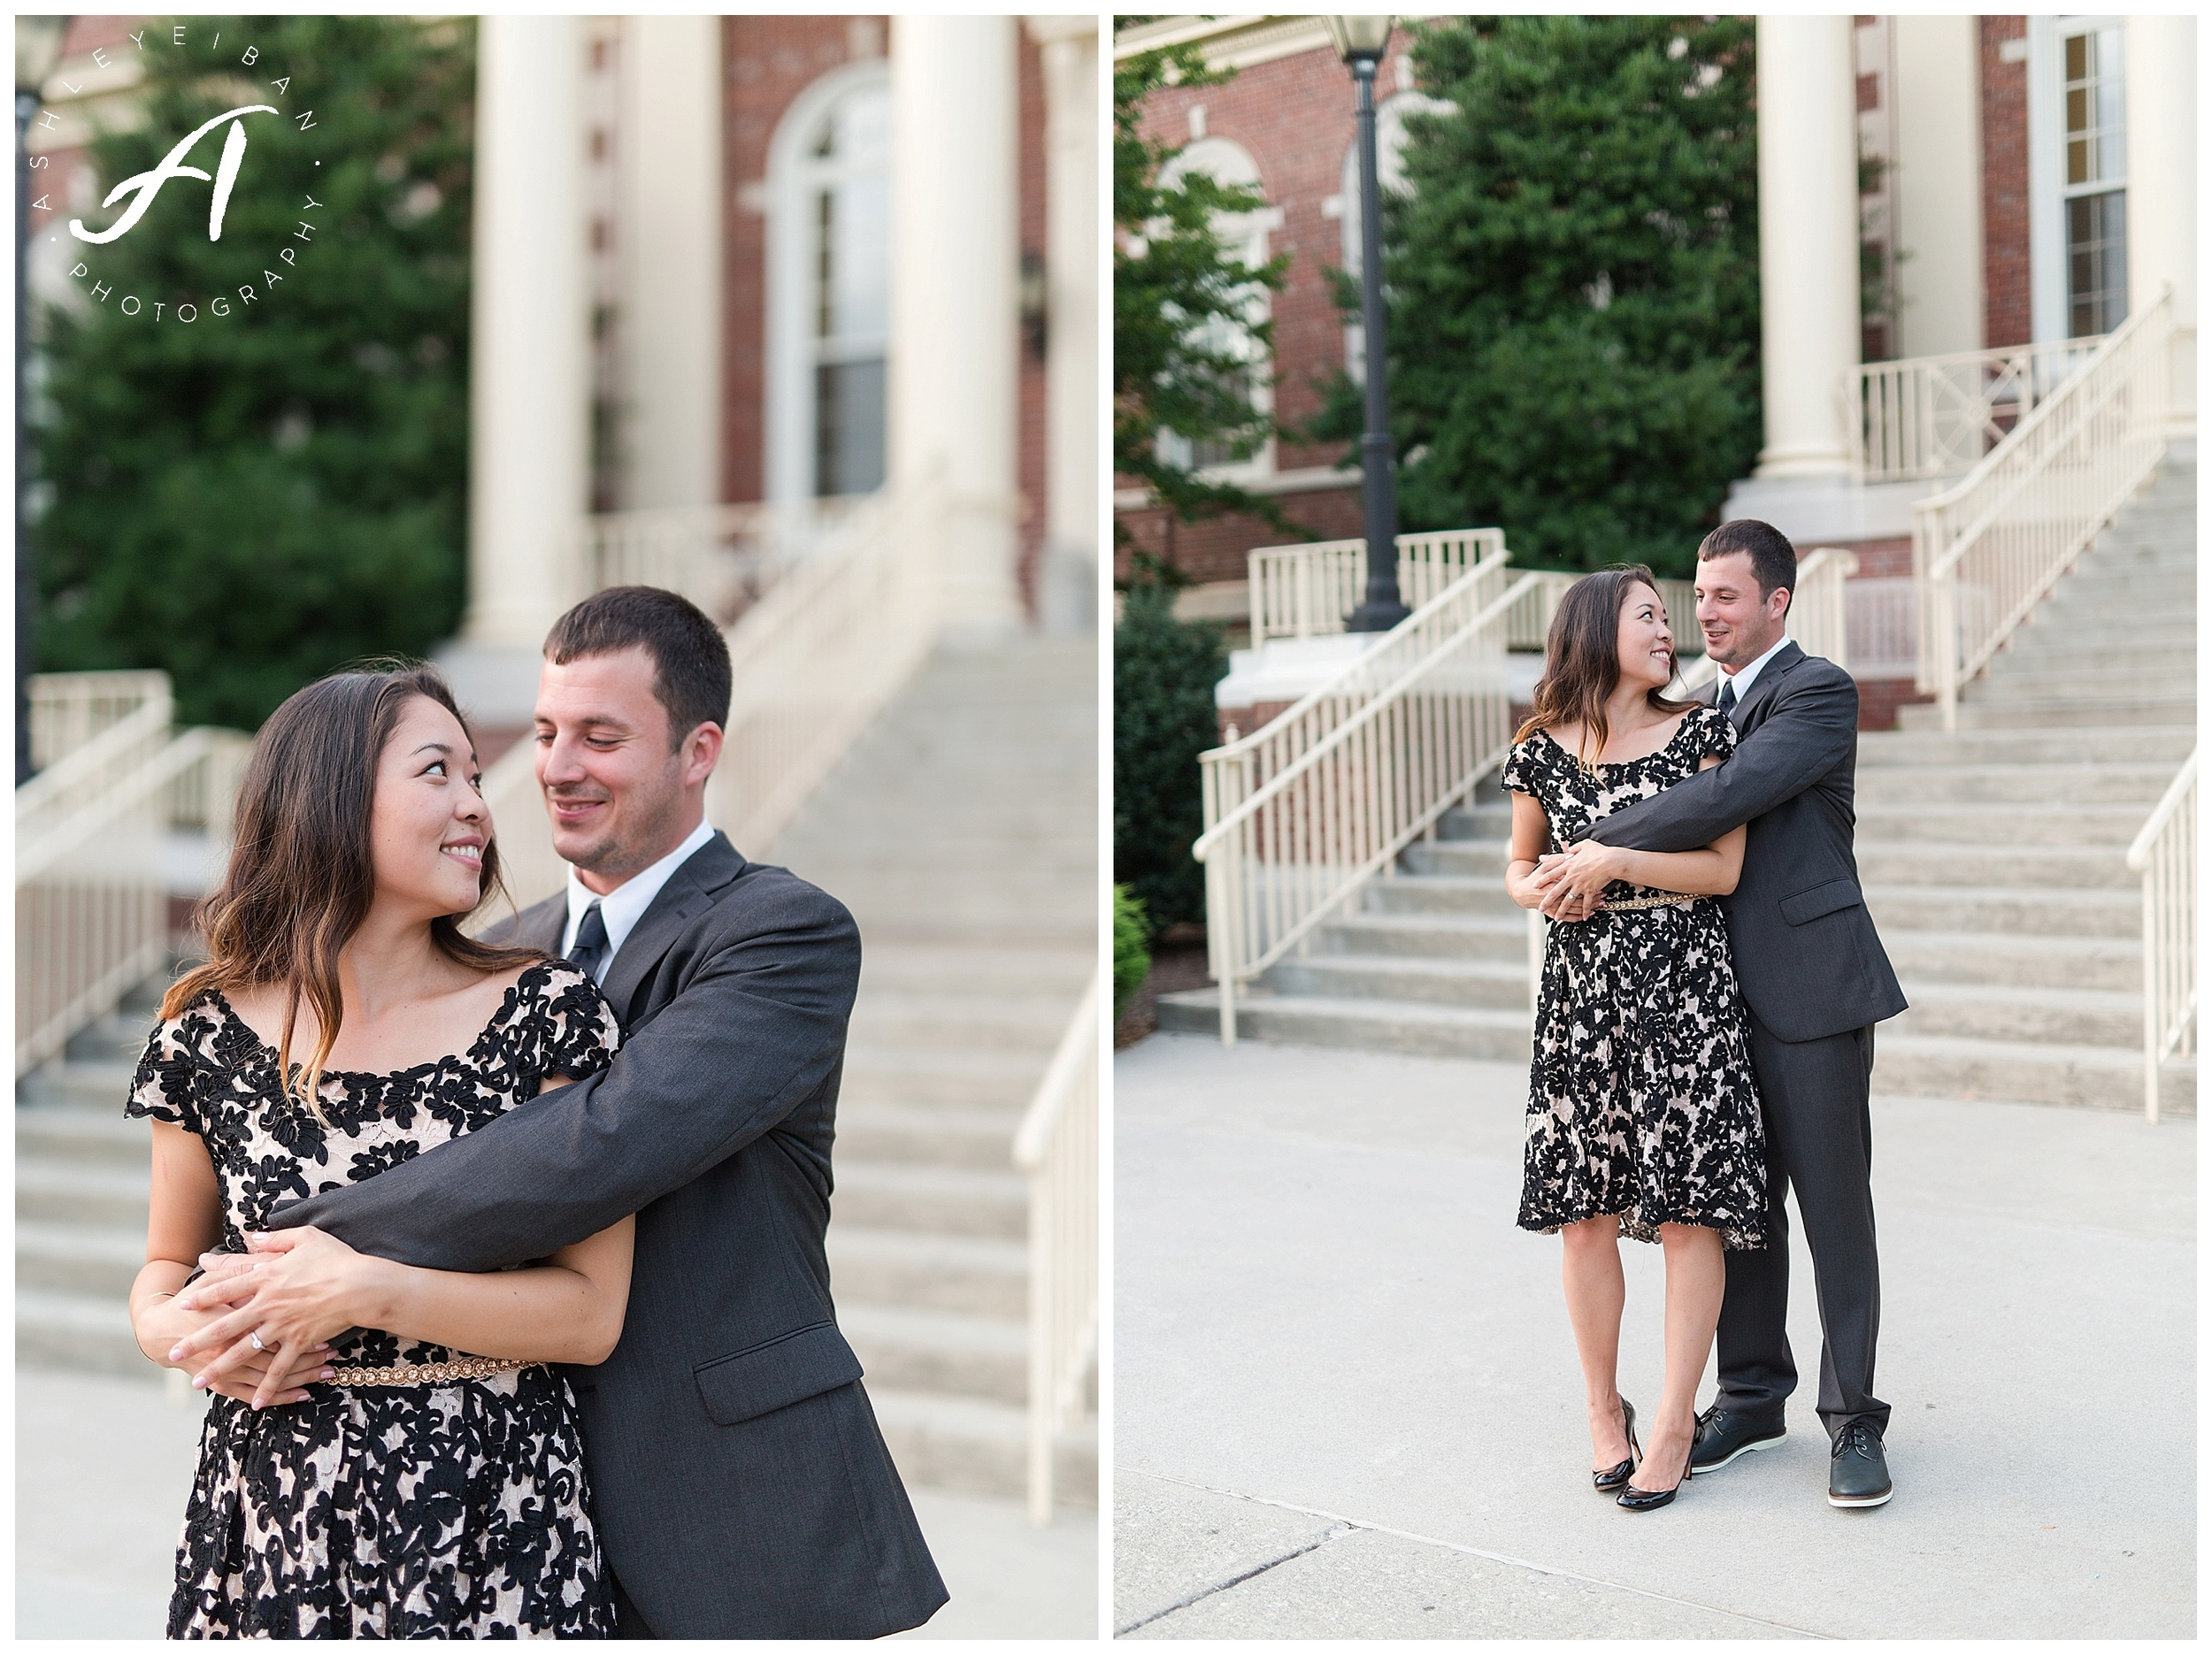 Radford University Engagement Photos || Lynchburg Wedding Photographer || Ashley Eiban Photography || www.ashleyeiban.com